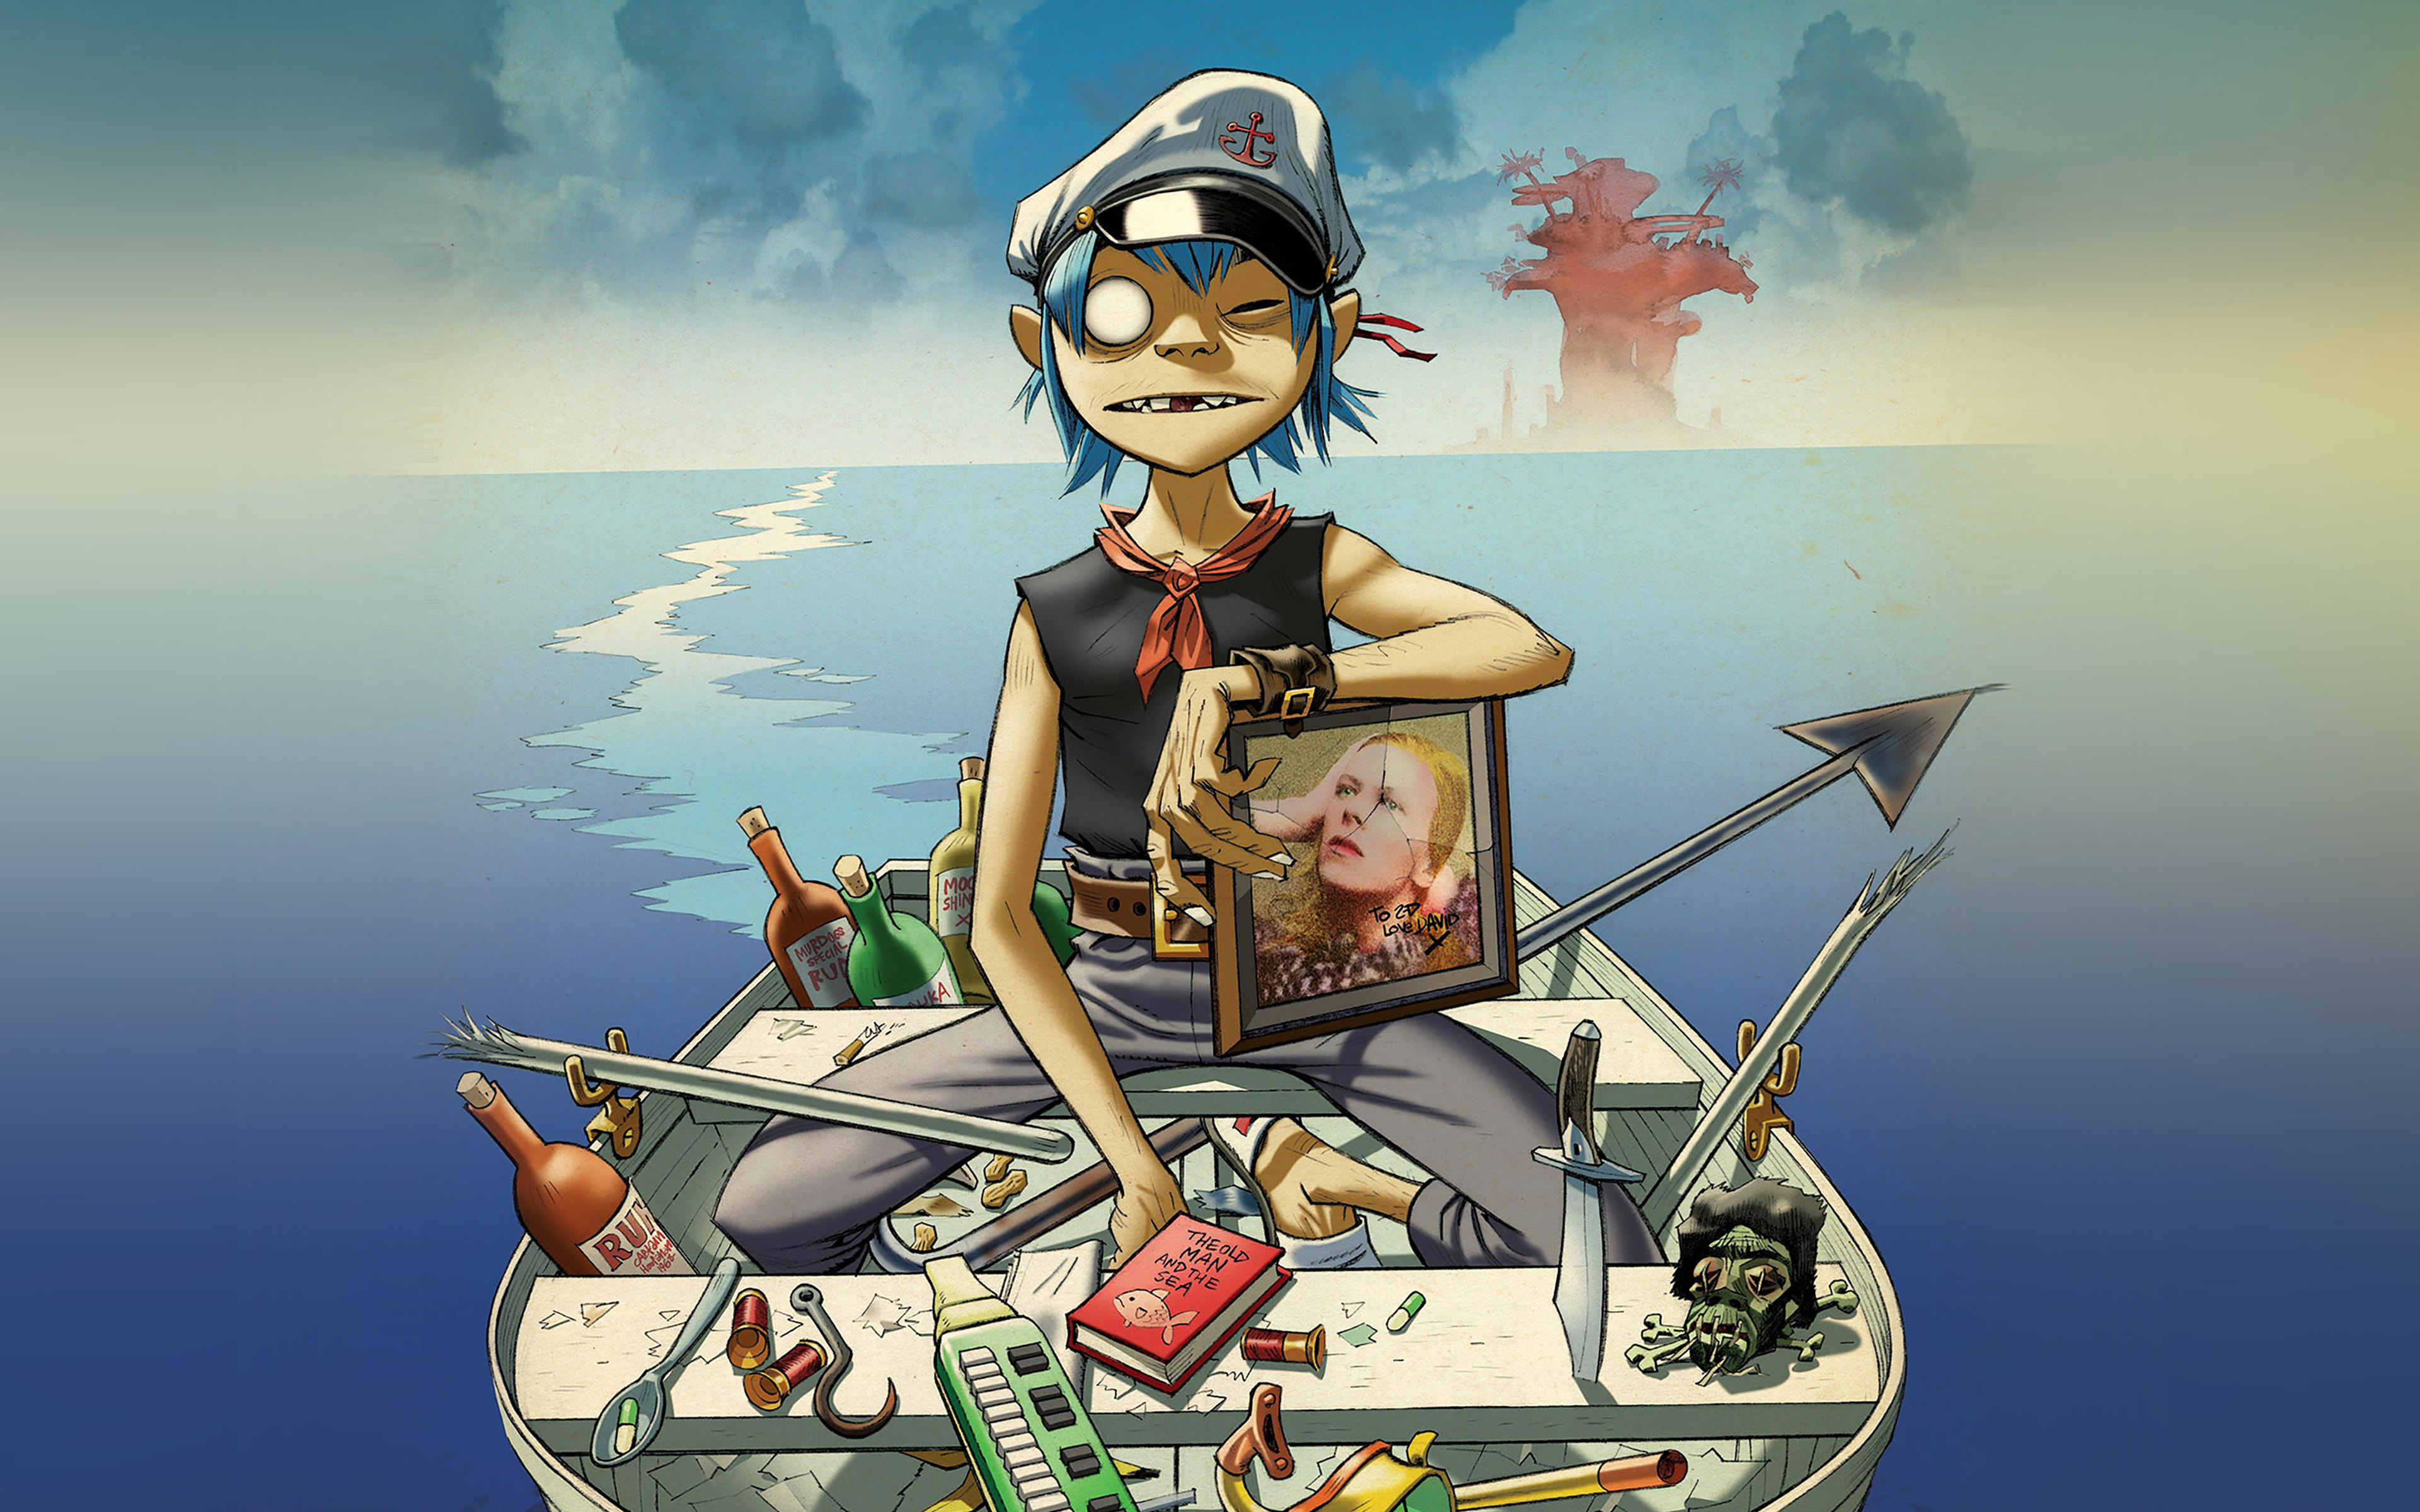 ab05-wallpaper-gorillaz-boat-illust-music - Papers.co